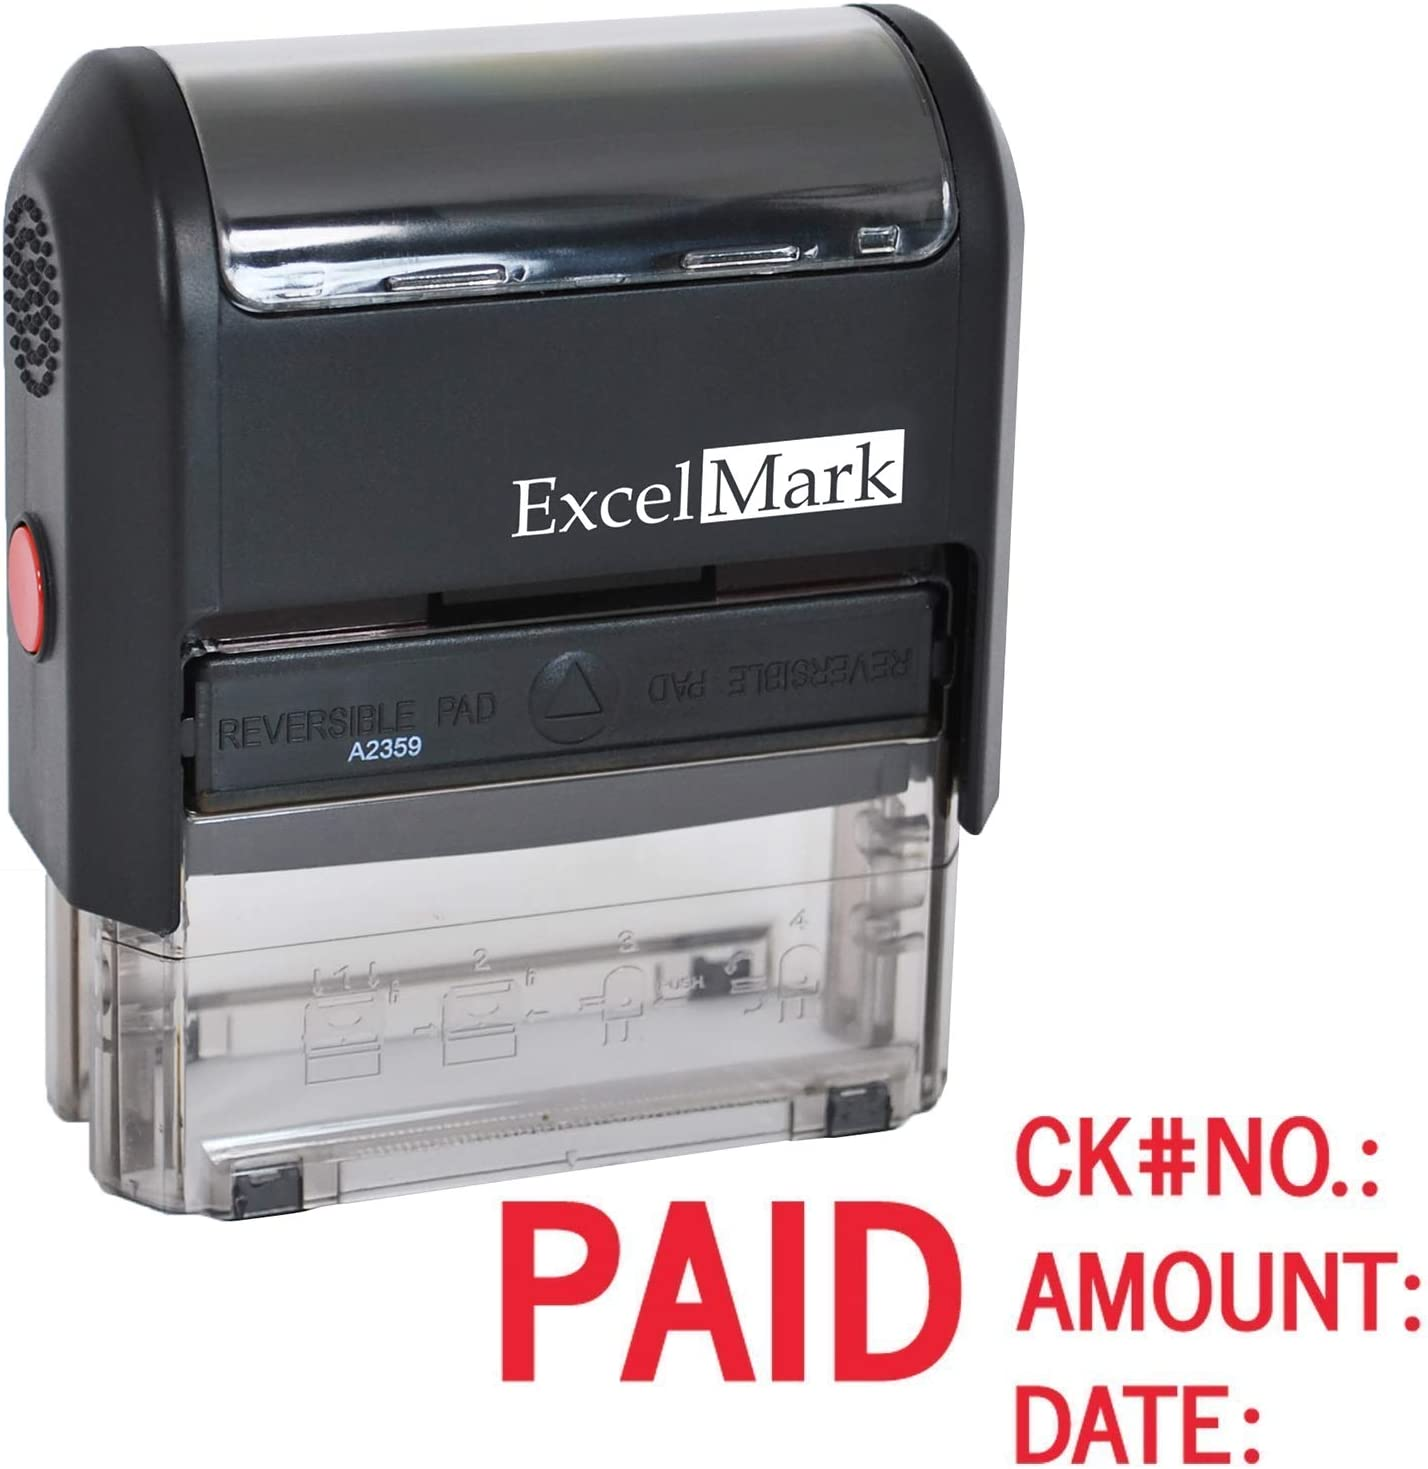 Paid with Check No, Amount, Date - ExcelMark Self Inking Rubber Stamp - A2359